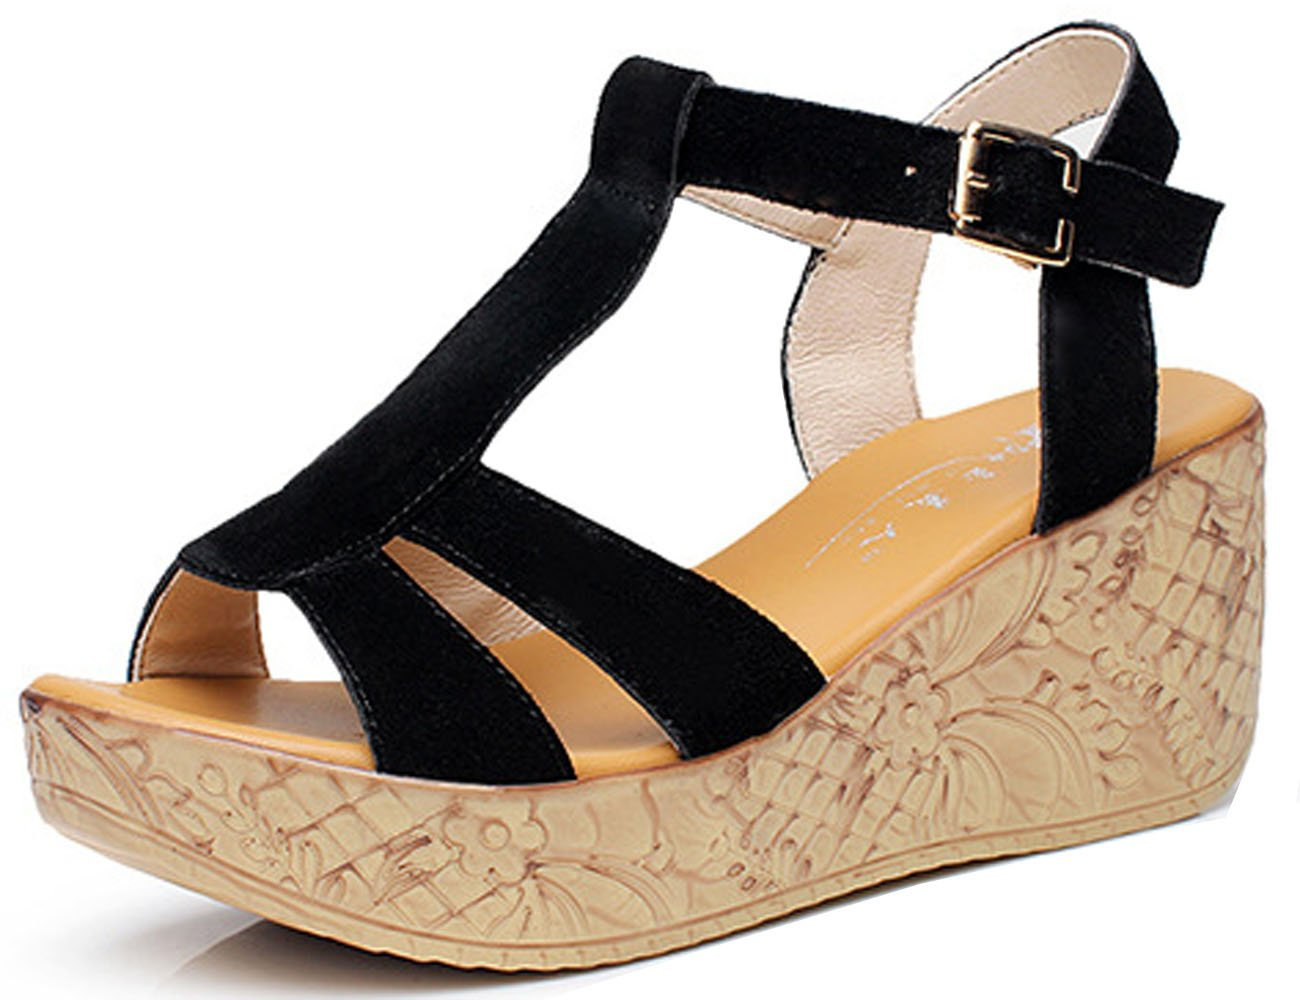 WAROFT Women's Cow Leather Fashion T Strap Platform Wedges Sandal with Buckle Shoes Size 4-10 B07CGR8LHR 4.5 B(M) US|Black